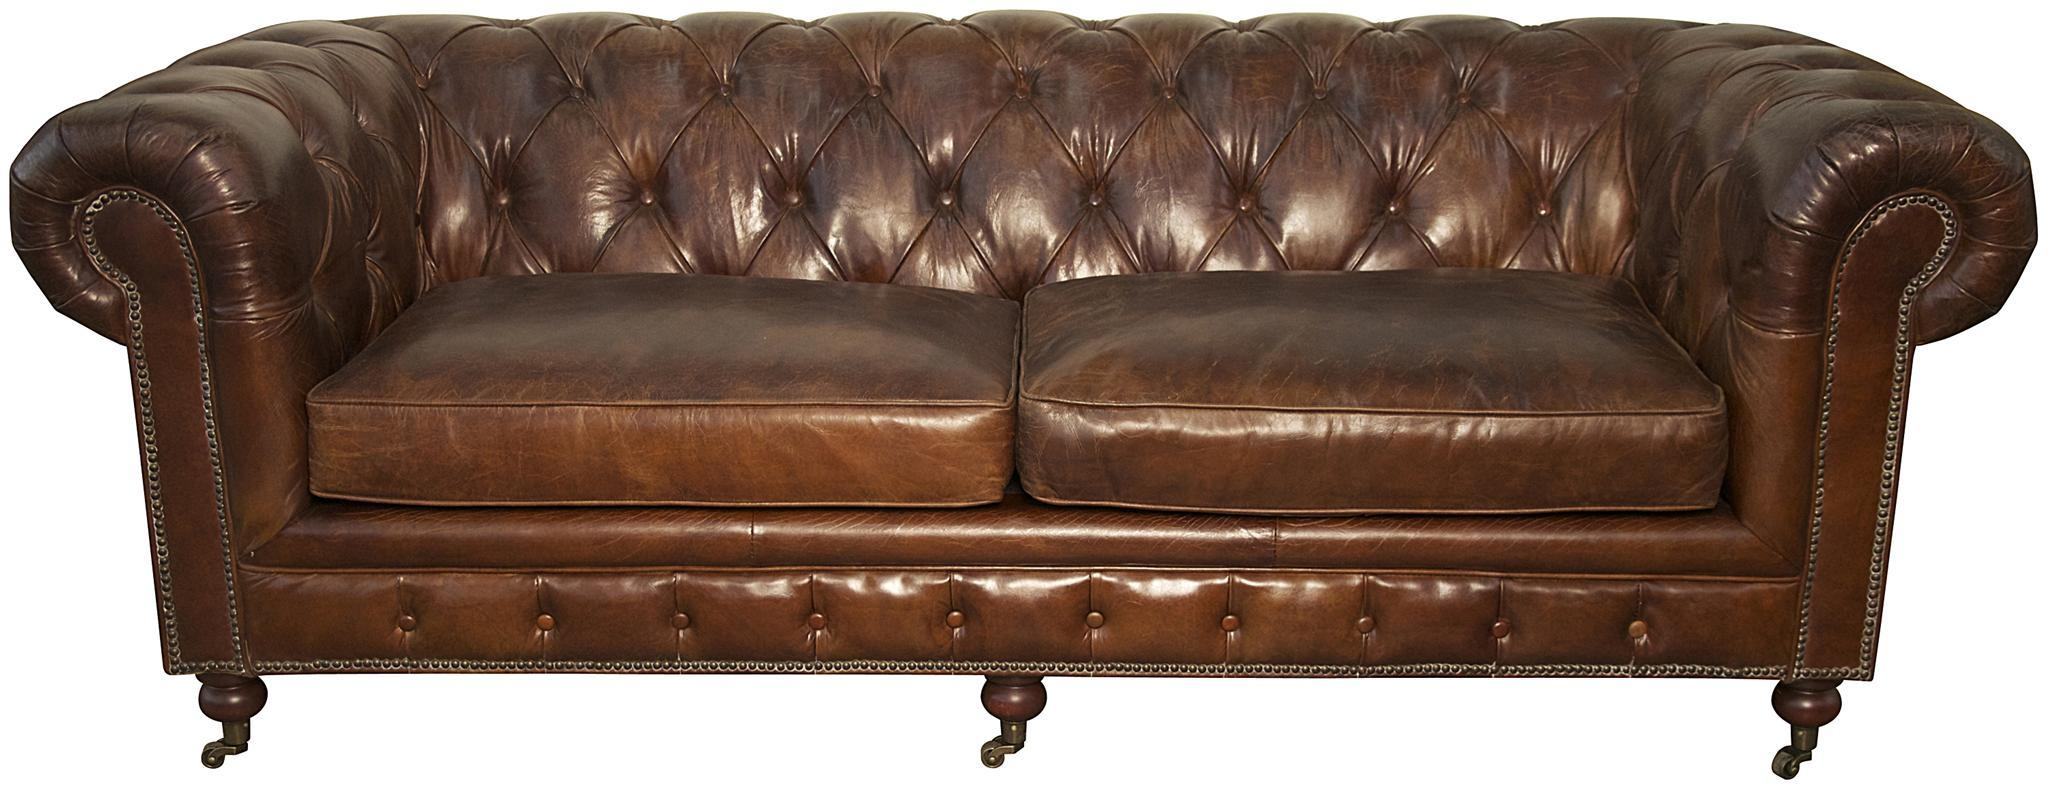 Sofas Center : Leather Tufted Sofa Seat Too With Rolled Arms White With Regard To Brown Tufted Sofas (View 2 of 20)